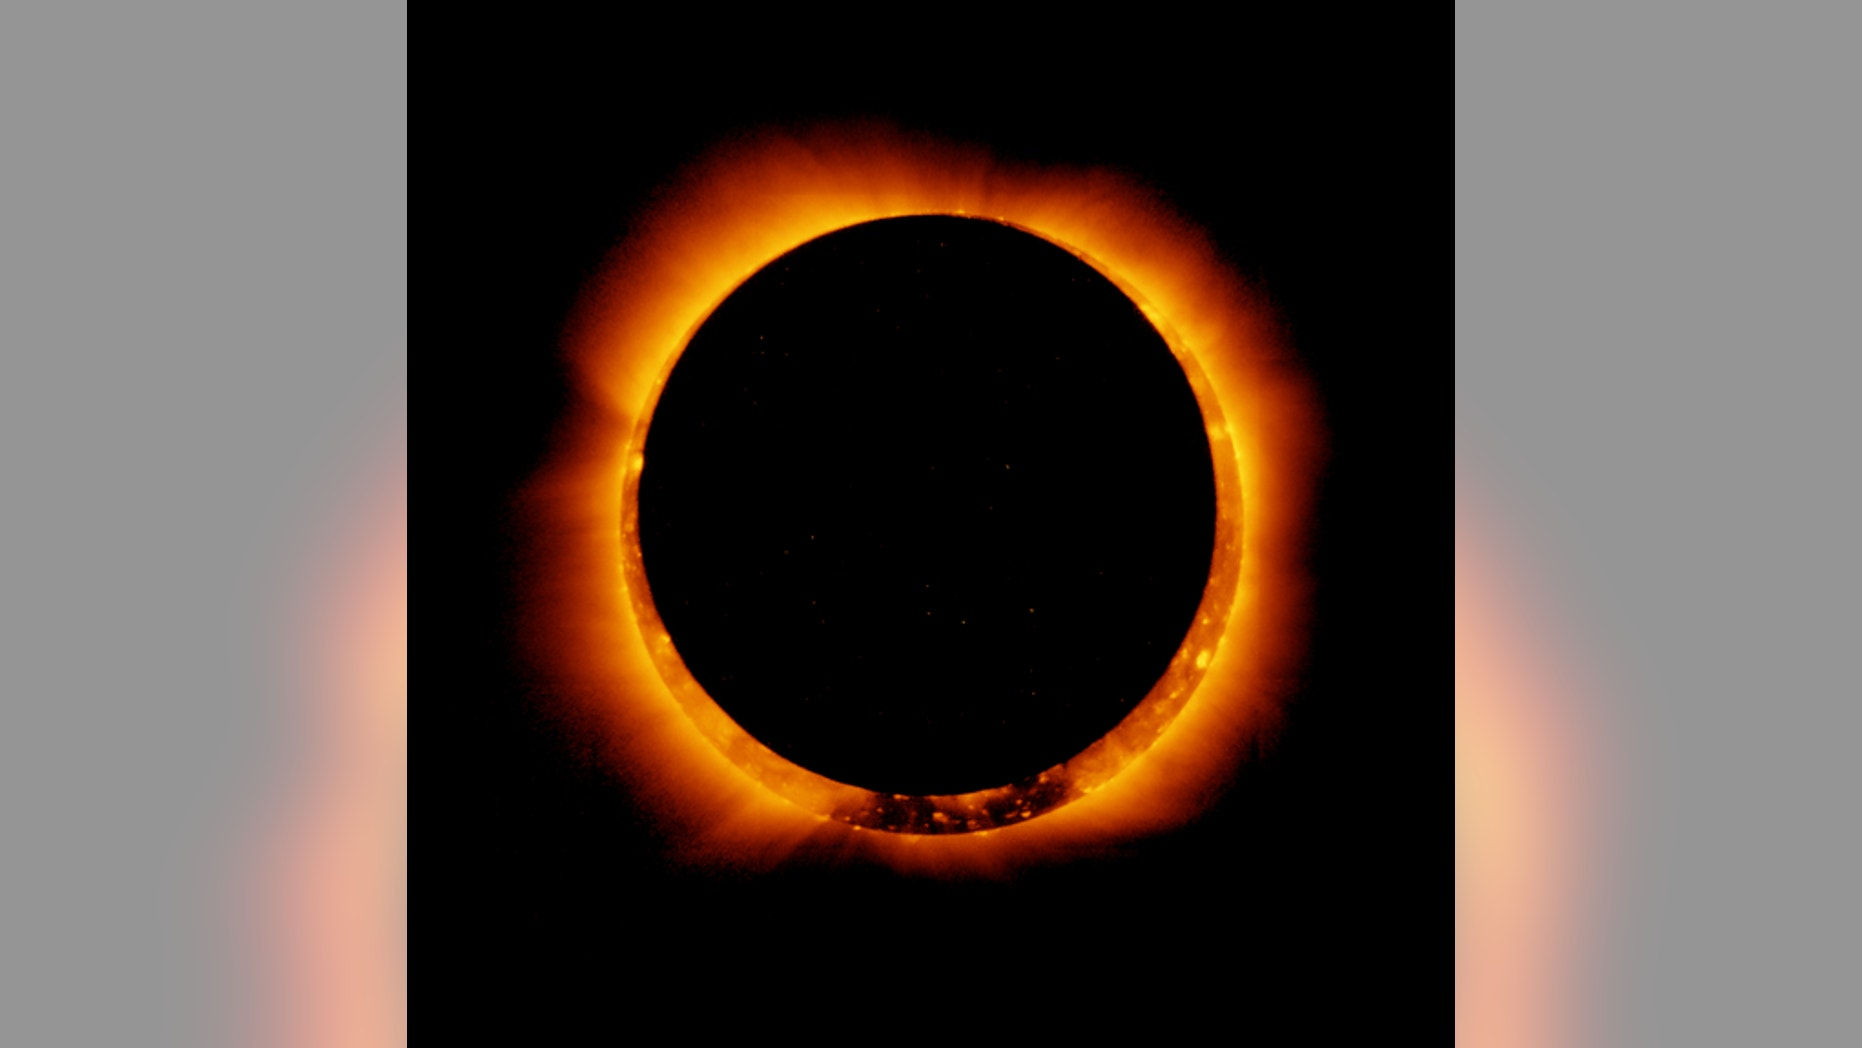 In this picture of a solar eclipse, the moon is beginning to move from its position in front of the sun.